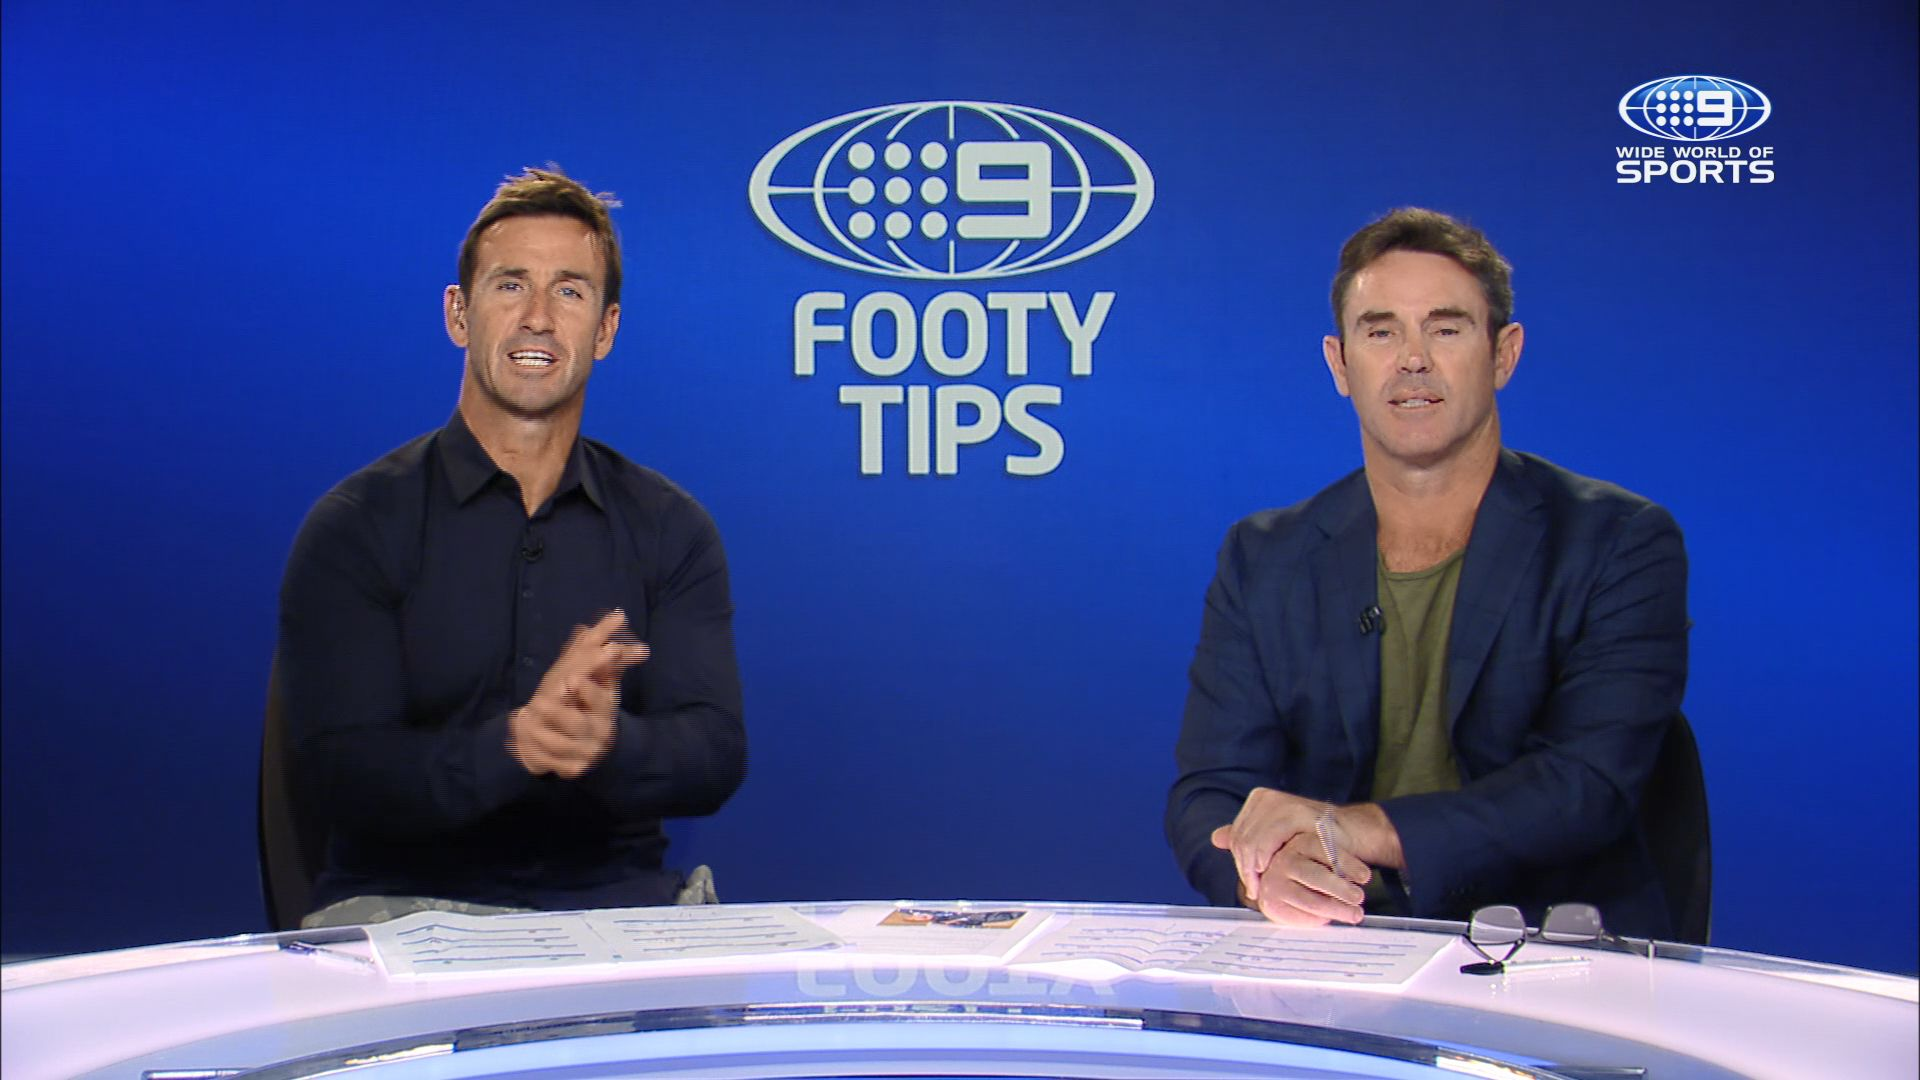 NRL footy tips Round 20: Freddy, Joey and Channel Nine's stars give their winners